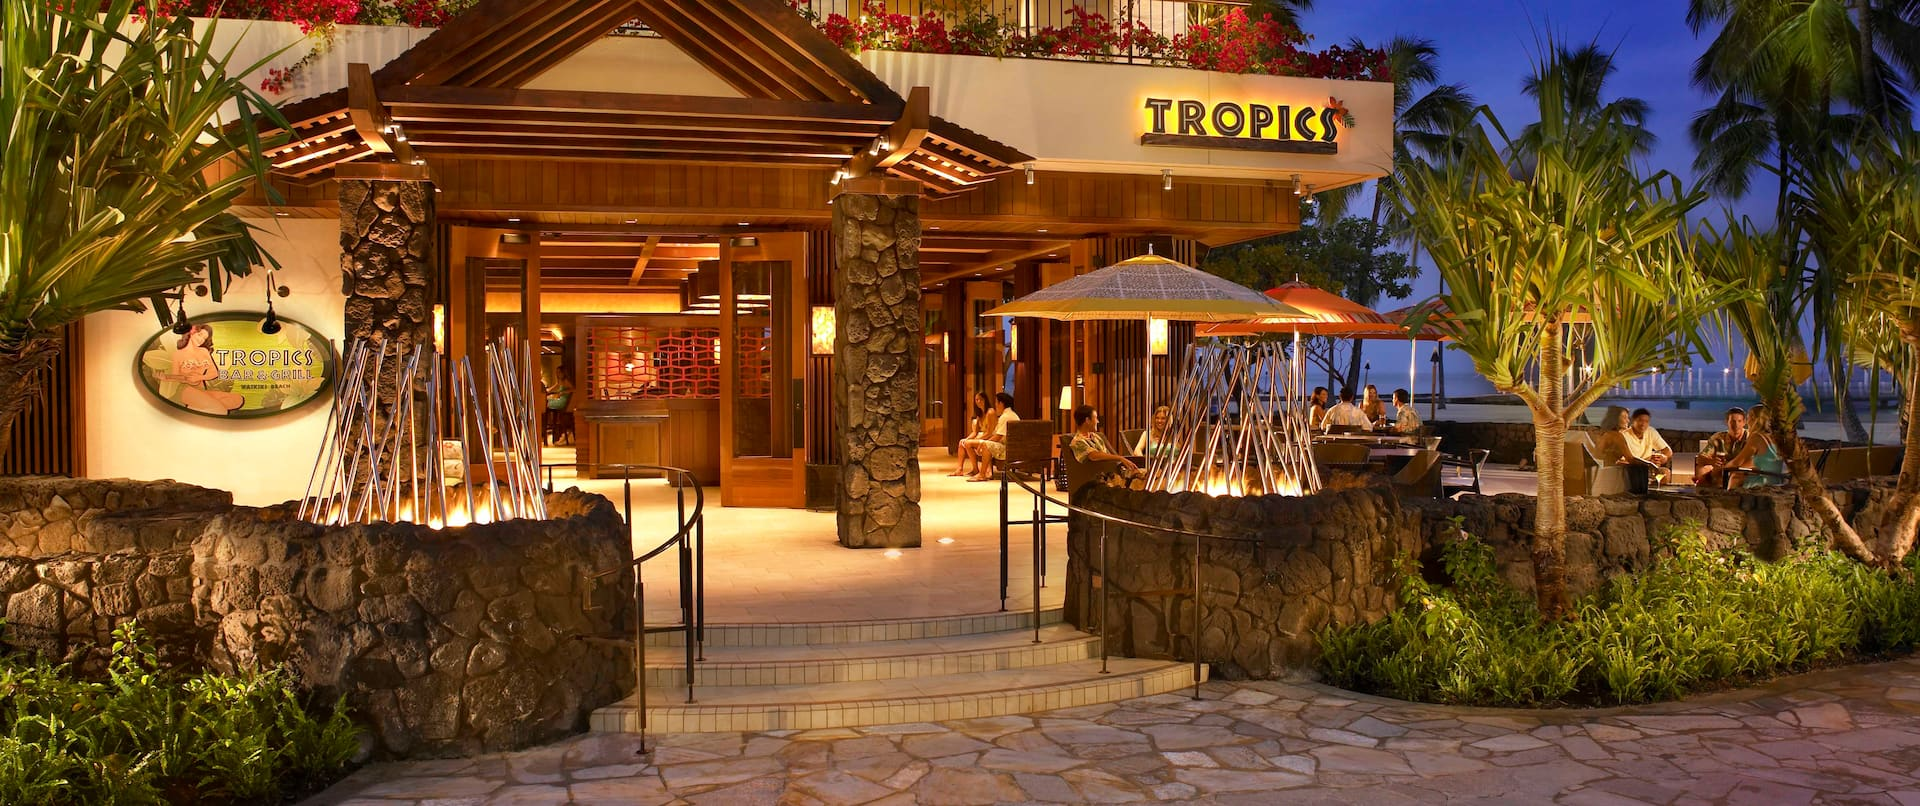 Tropics Bar and Grille - Night